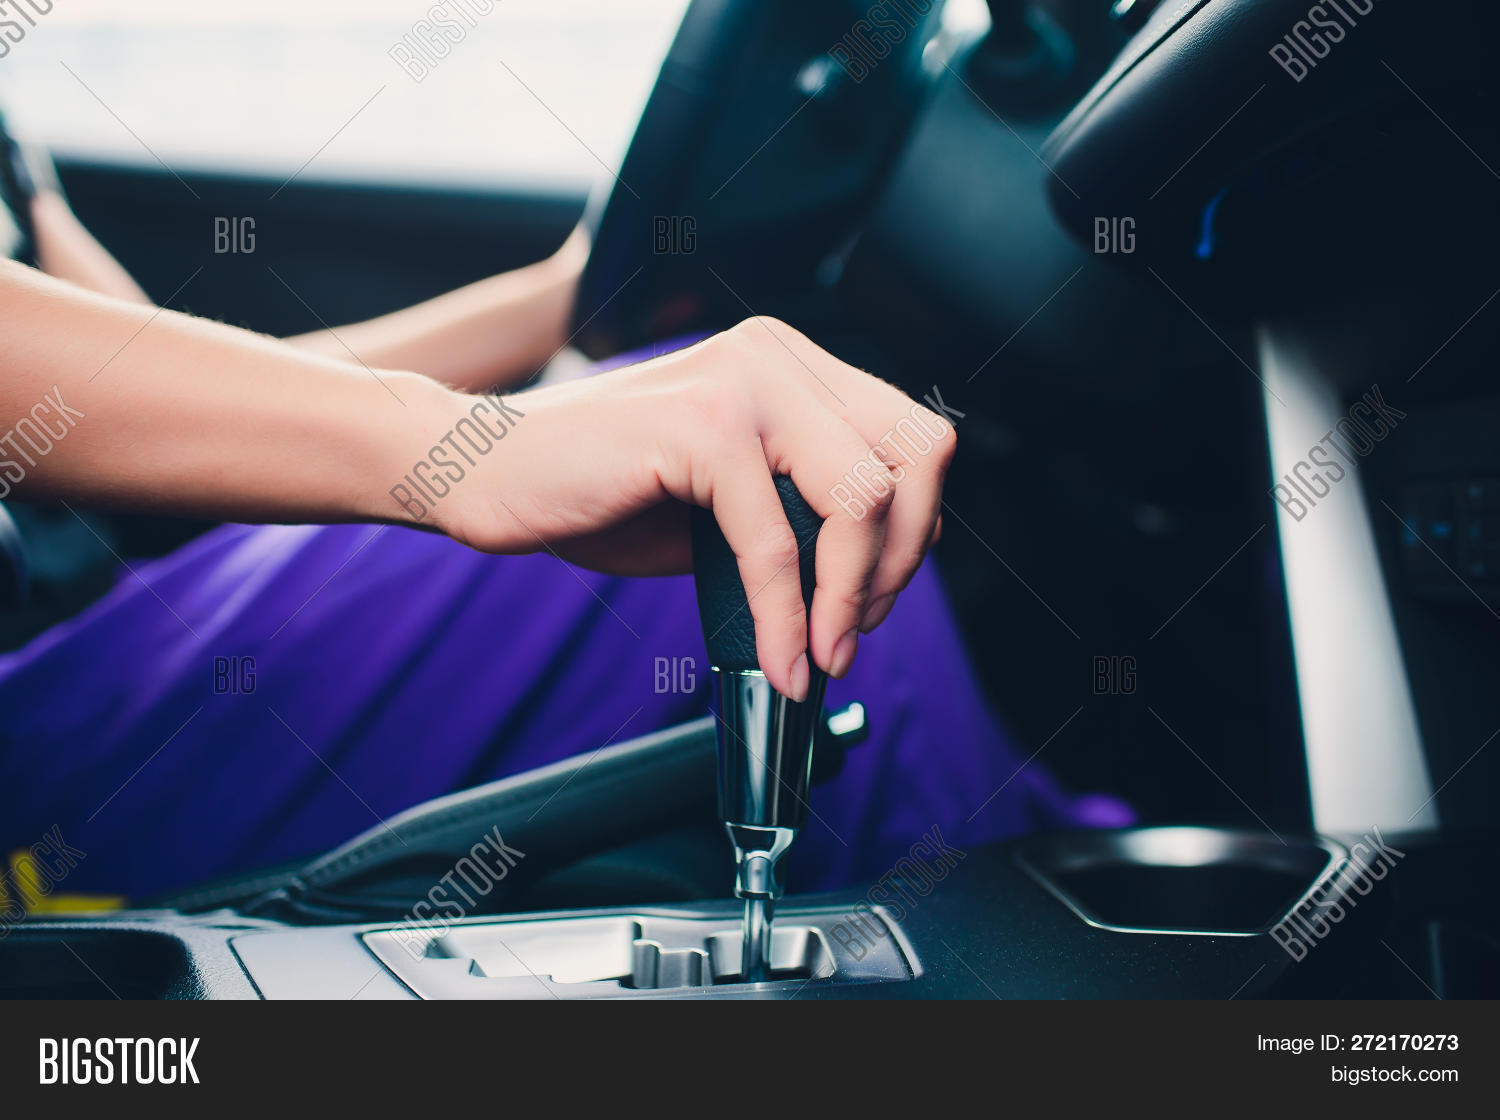 Close Young Woman Hand Image & Photo (Free Trial) | Bigstock